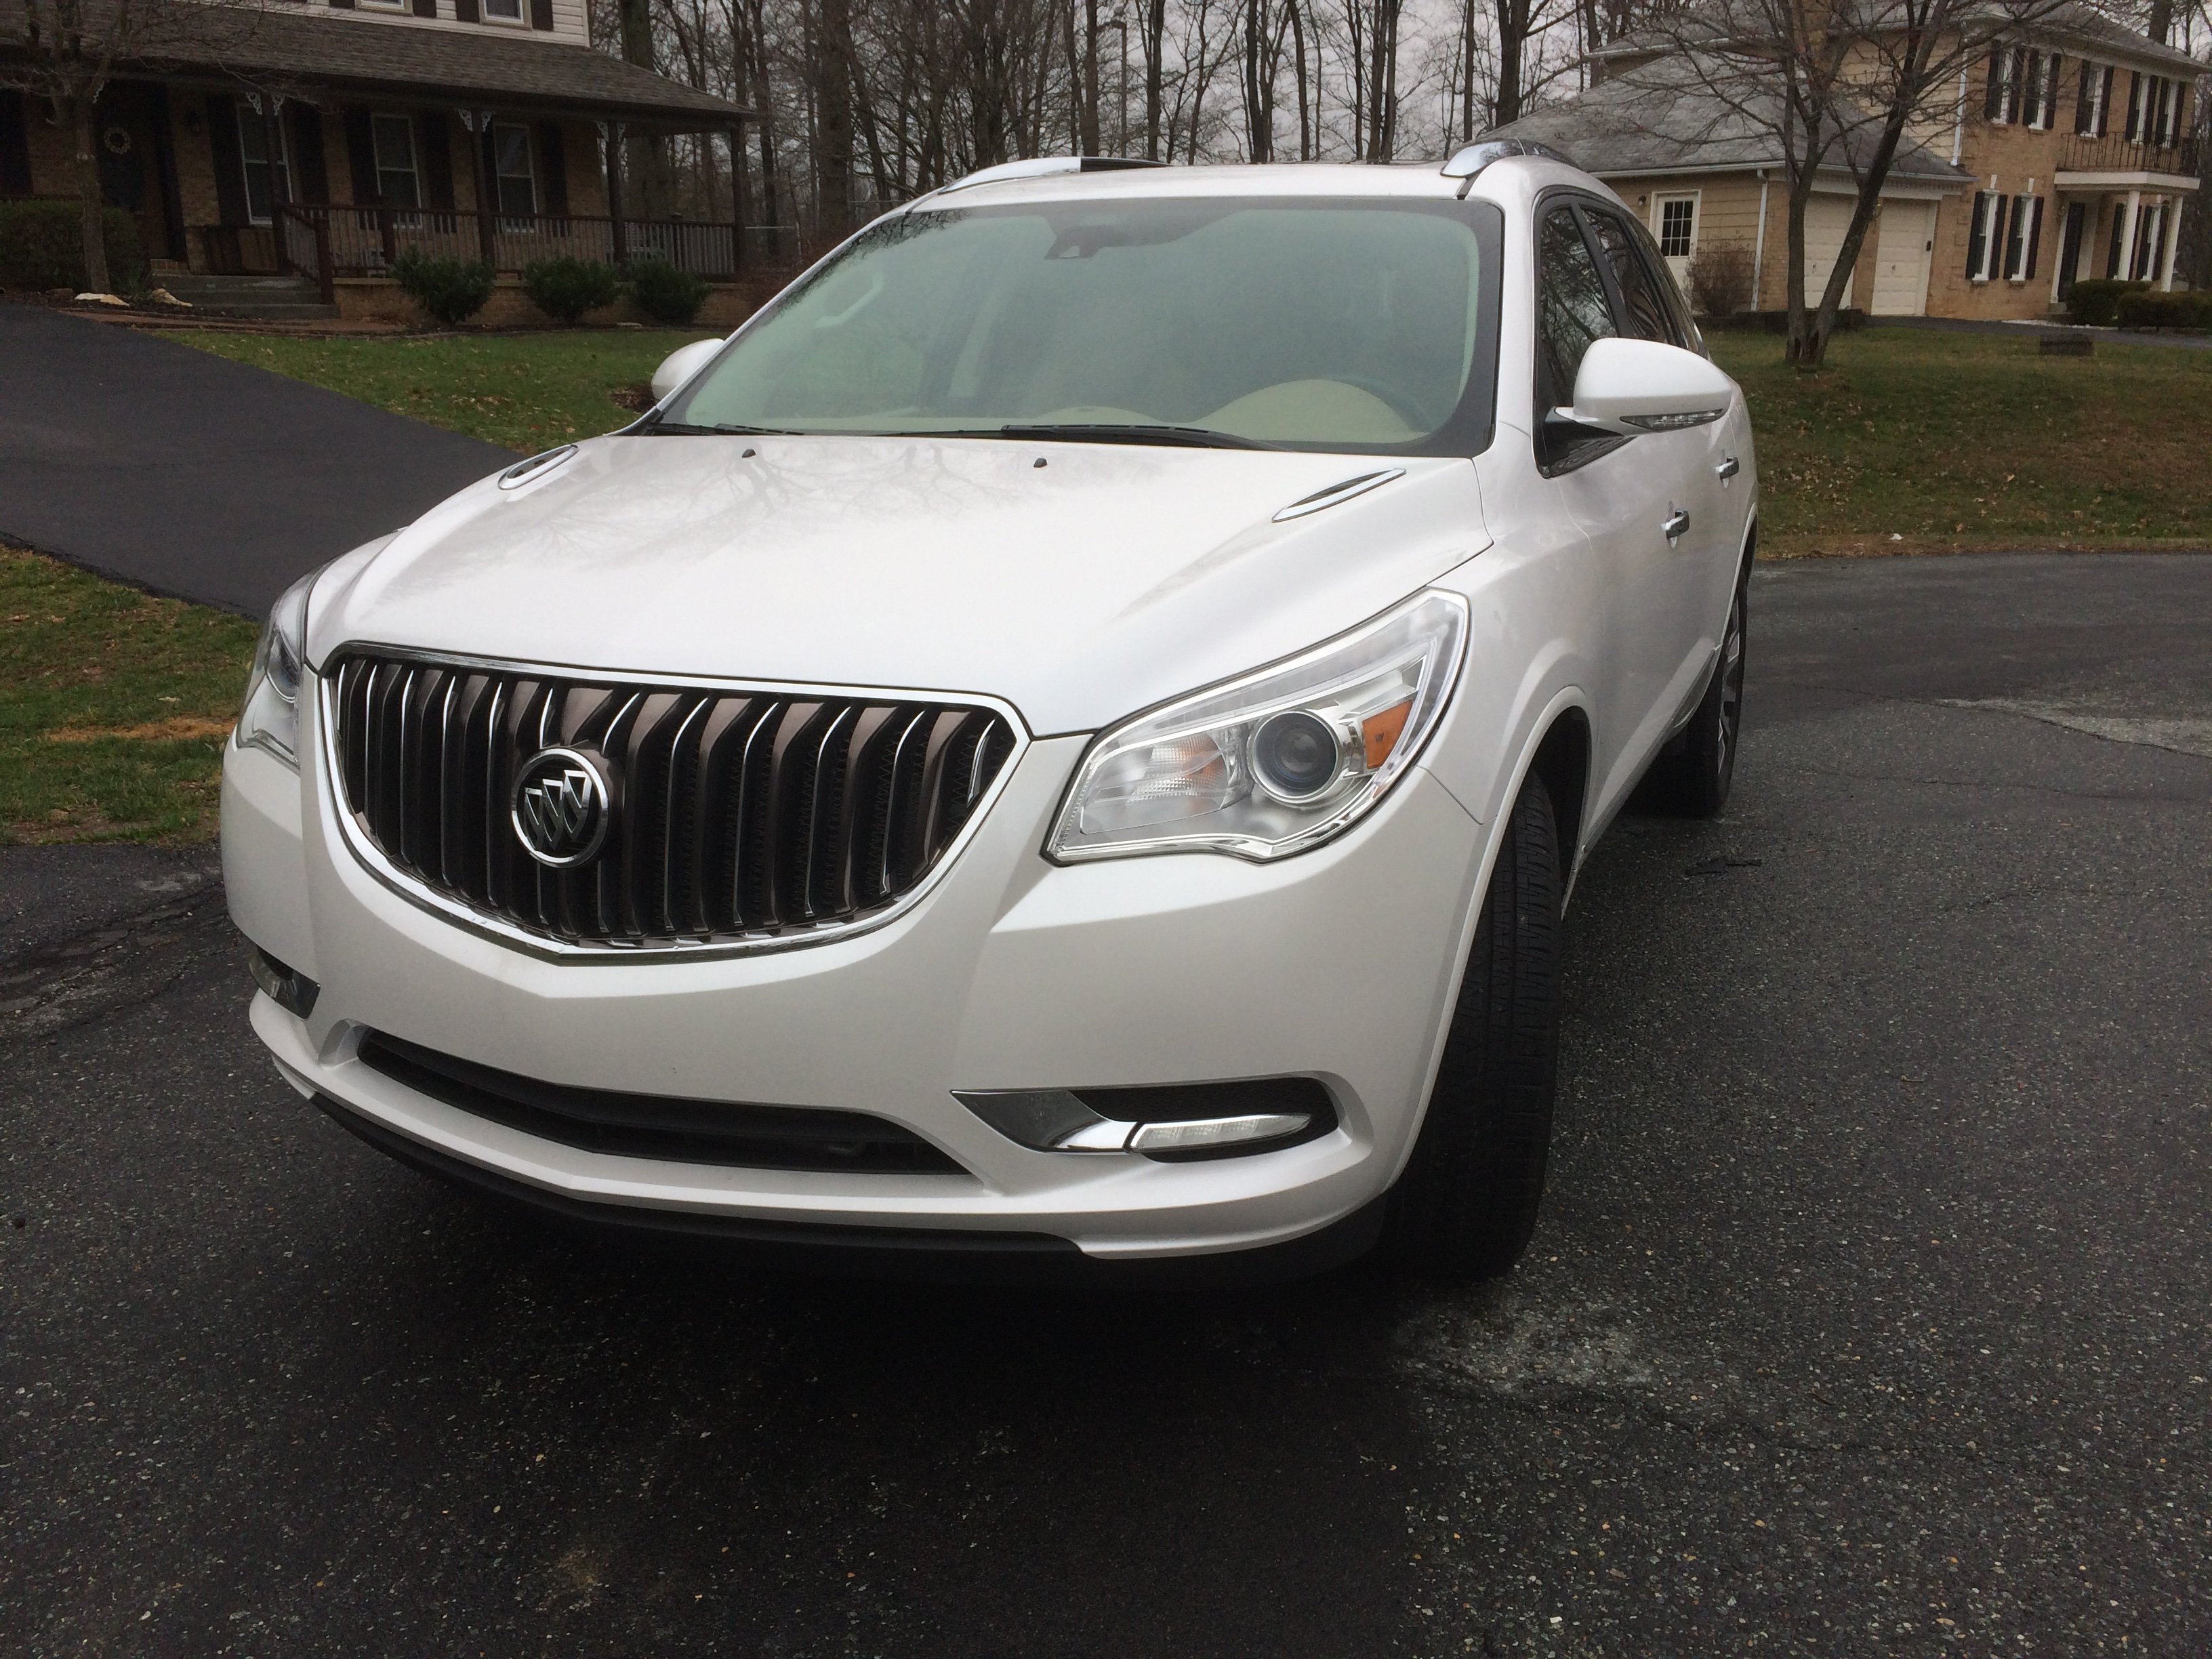 The Buick Enclave: Roomy and updated for 2016